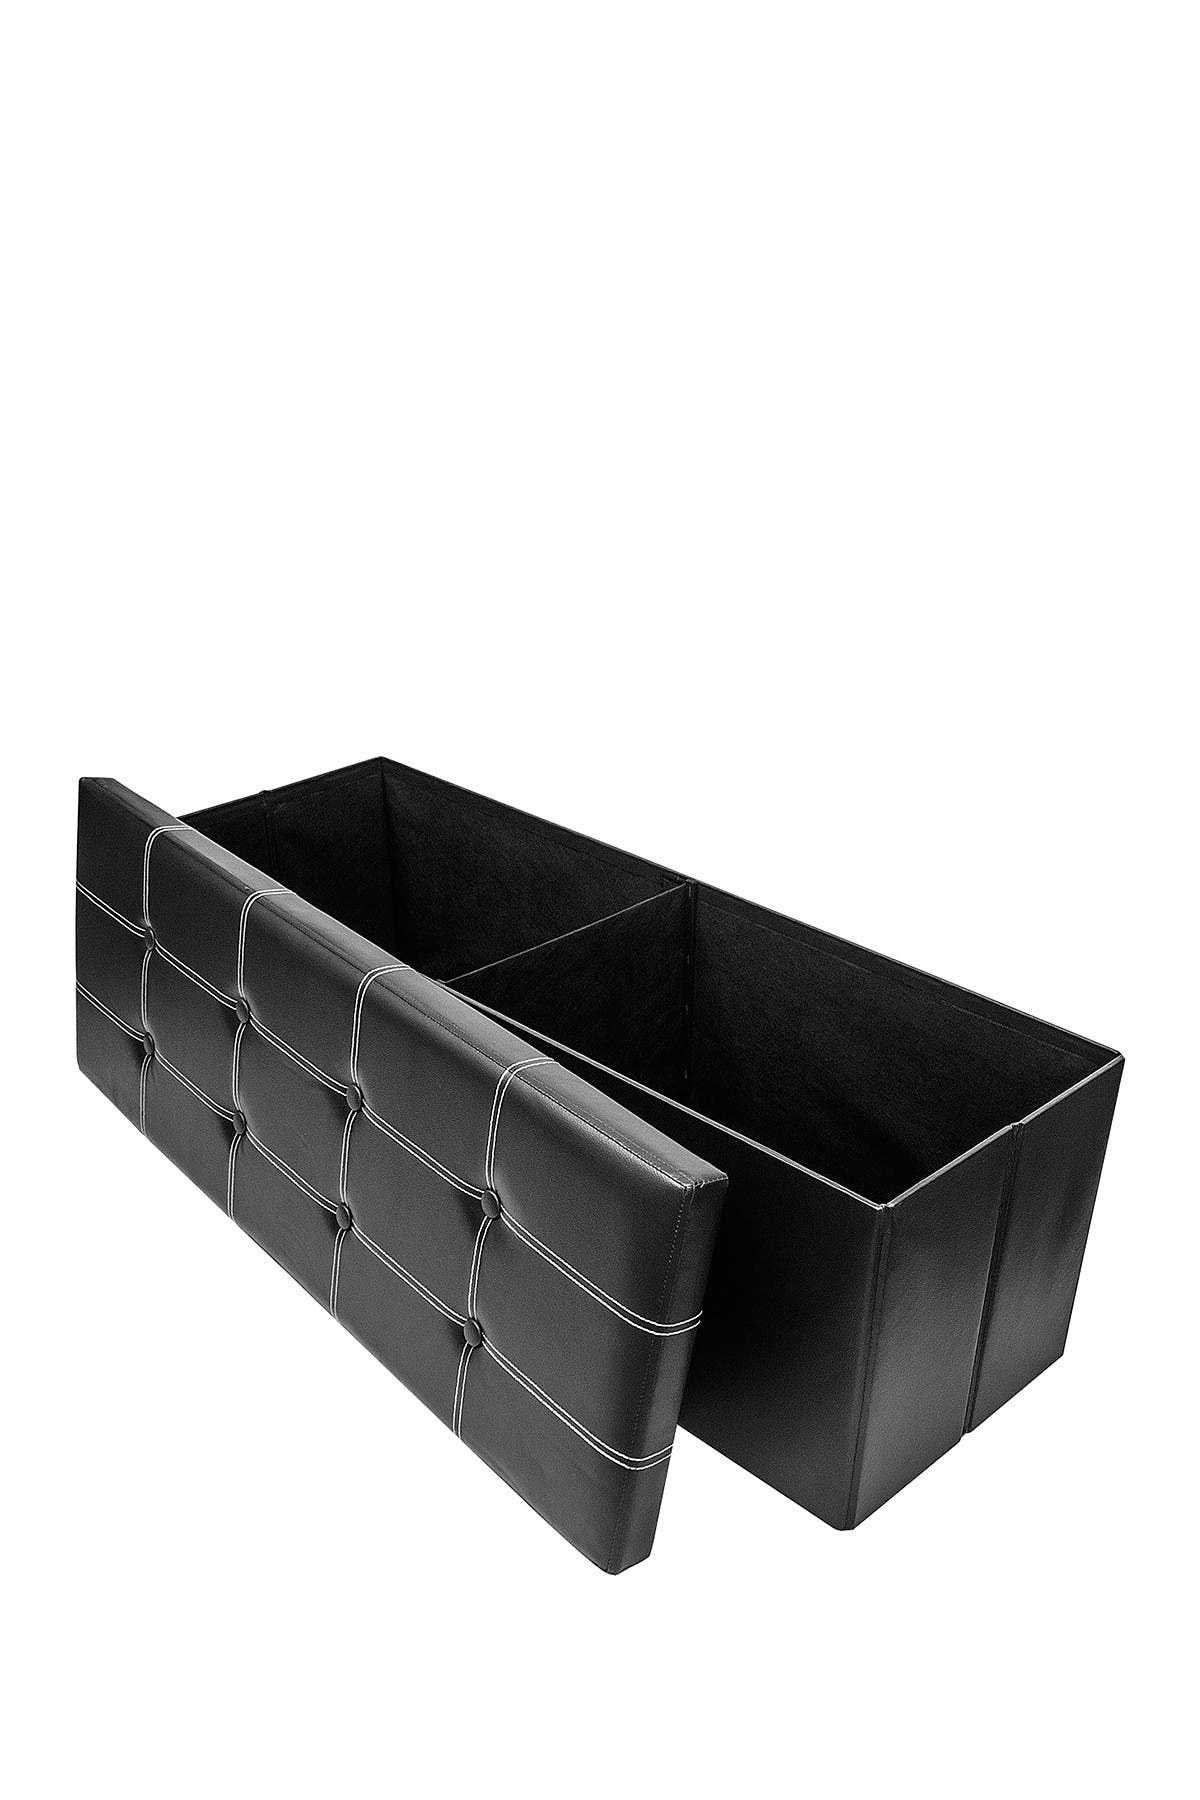 Image of Sorbus Black Faux Leather Folding Storage Ottoman Chest Bench